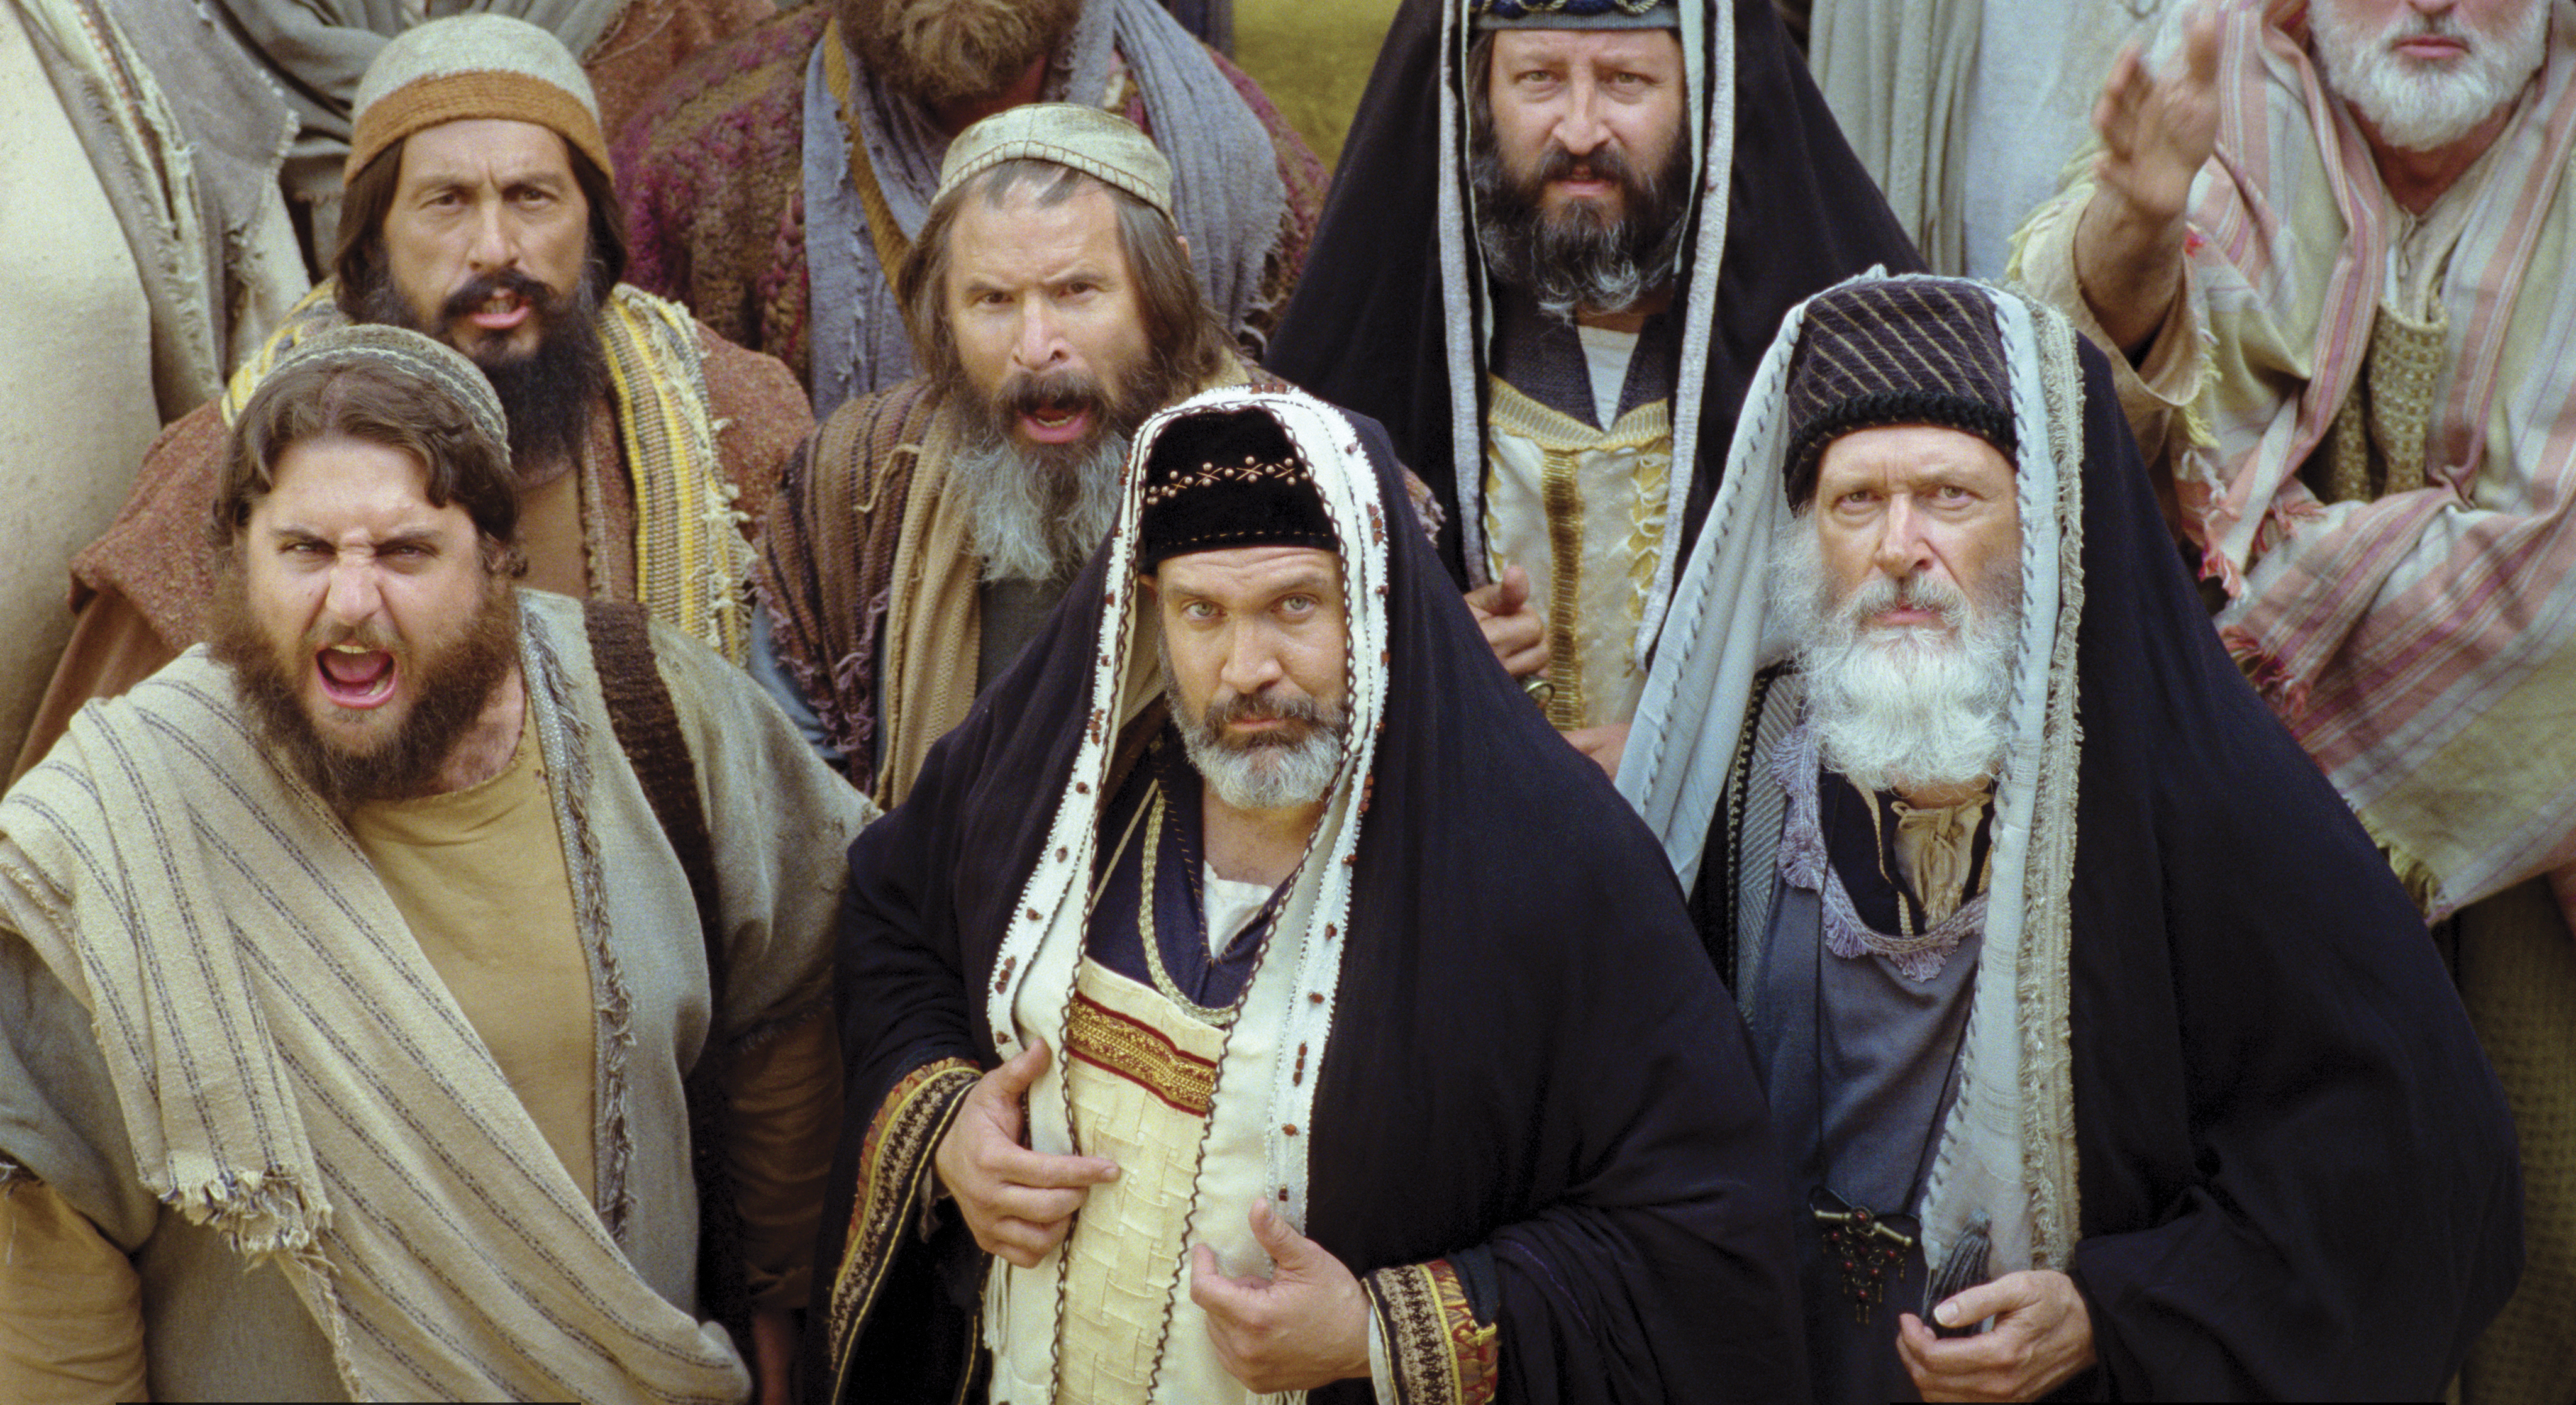 Priests in the congregation condemn Christ before Pilate.